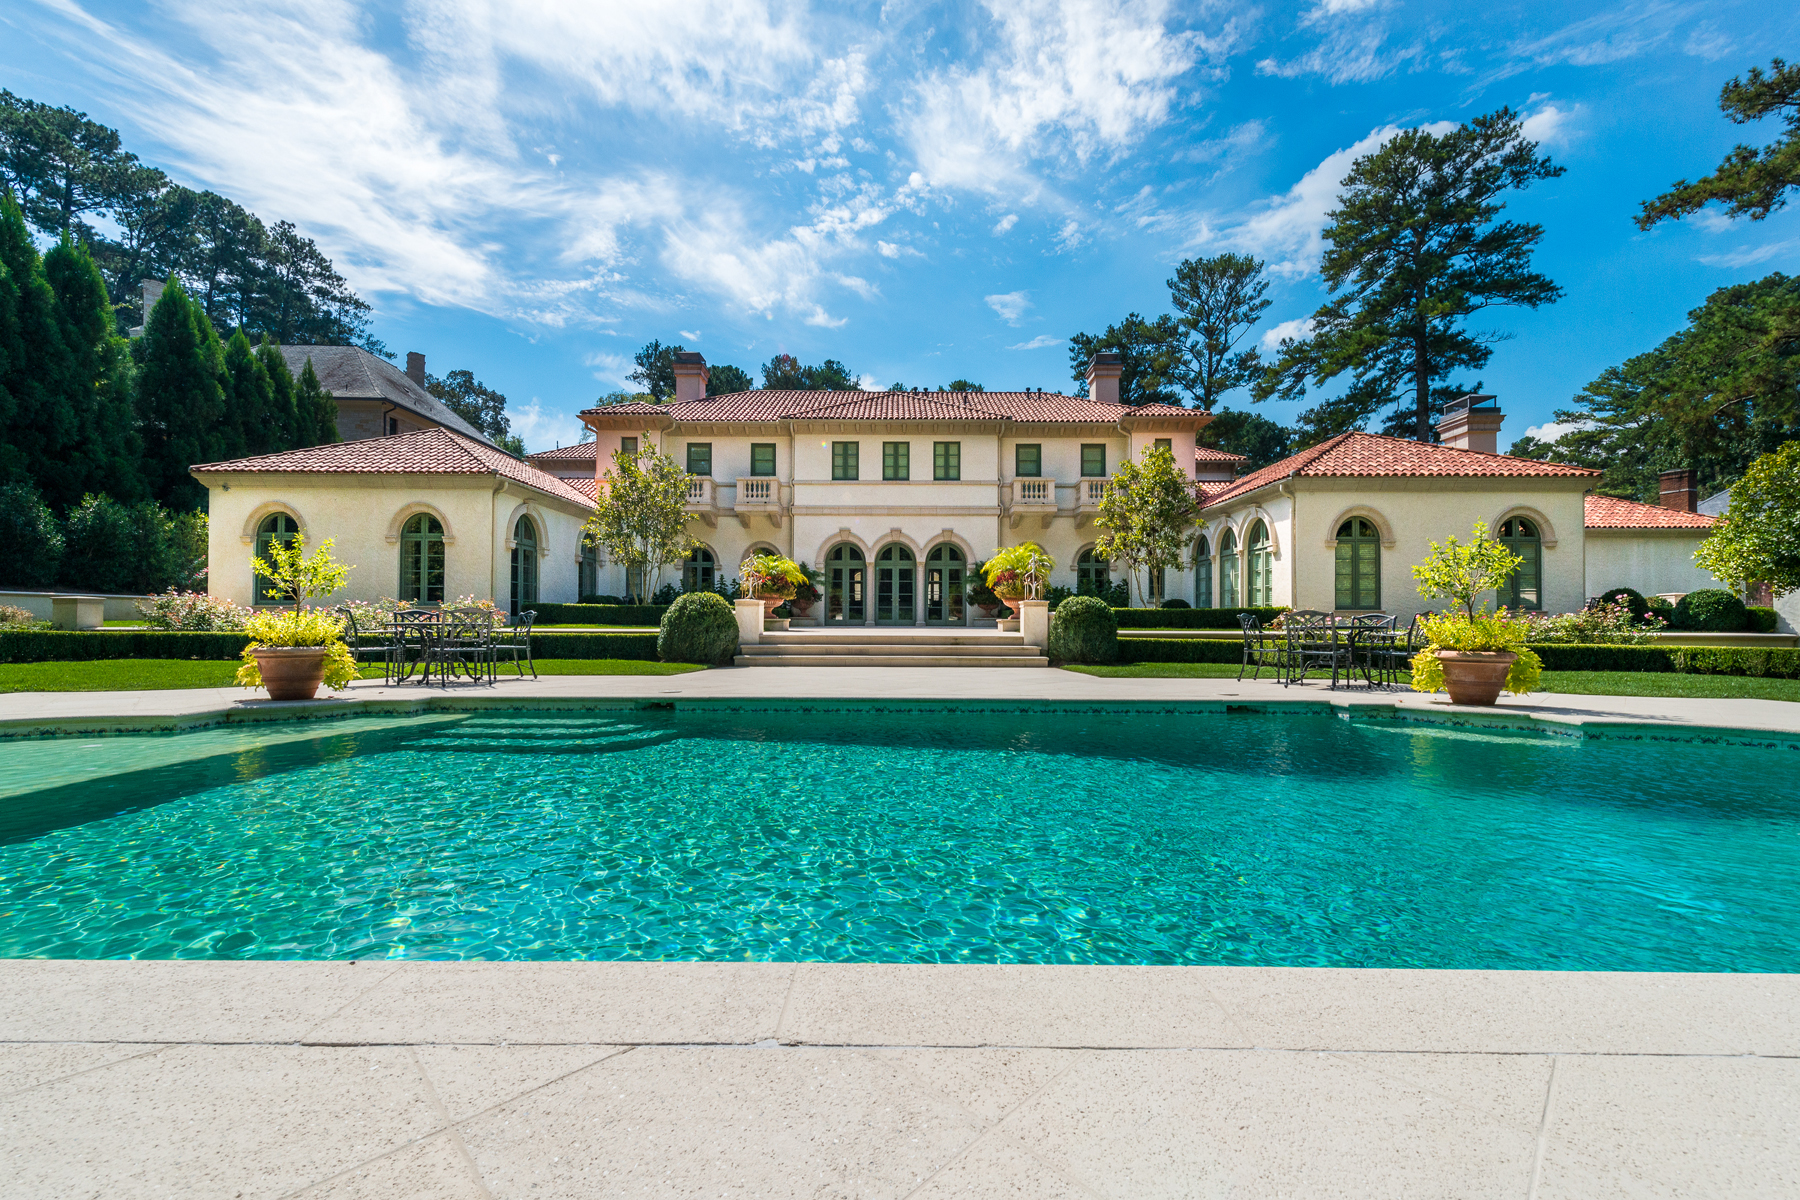 Single Family Home for Sale at The Most Elegant Home In Tuxedo Park 439 Blackland Road NW Tuxedo Park, Atlanta, Georgia, 30342 United States